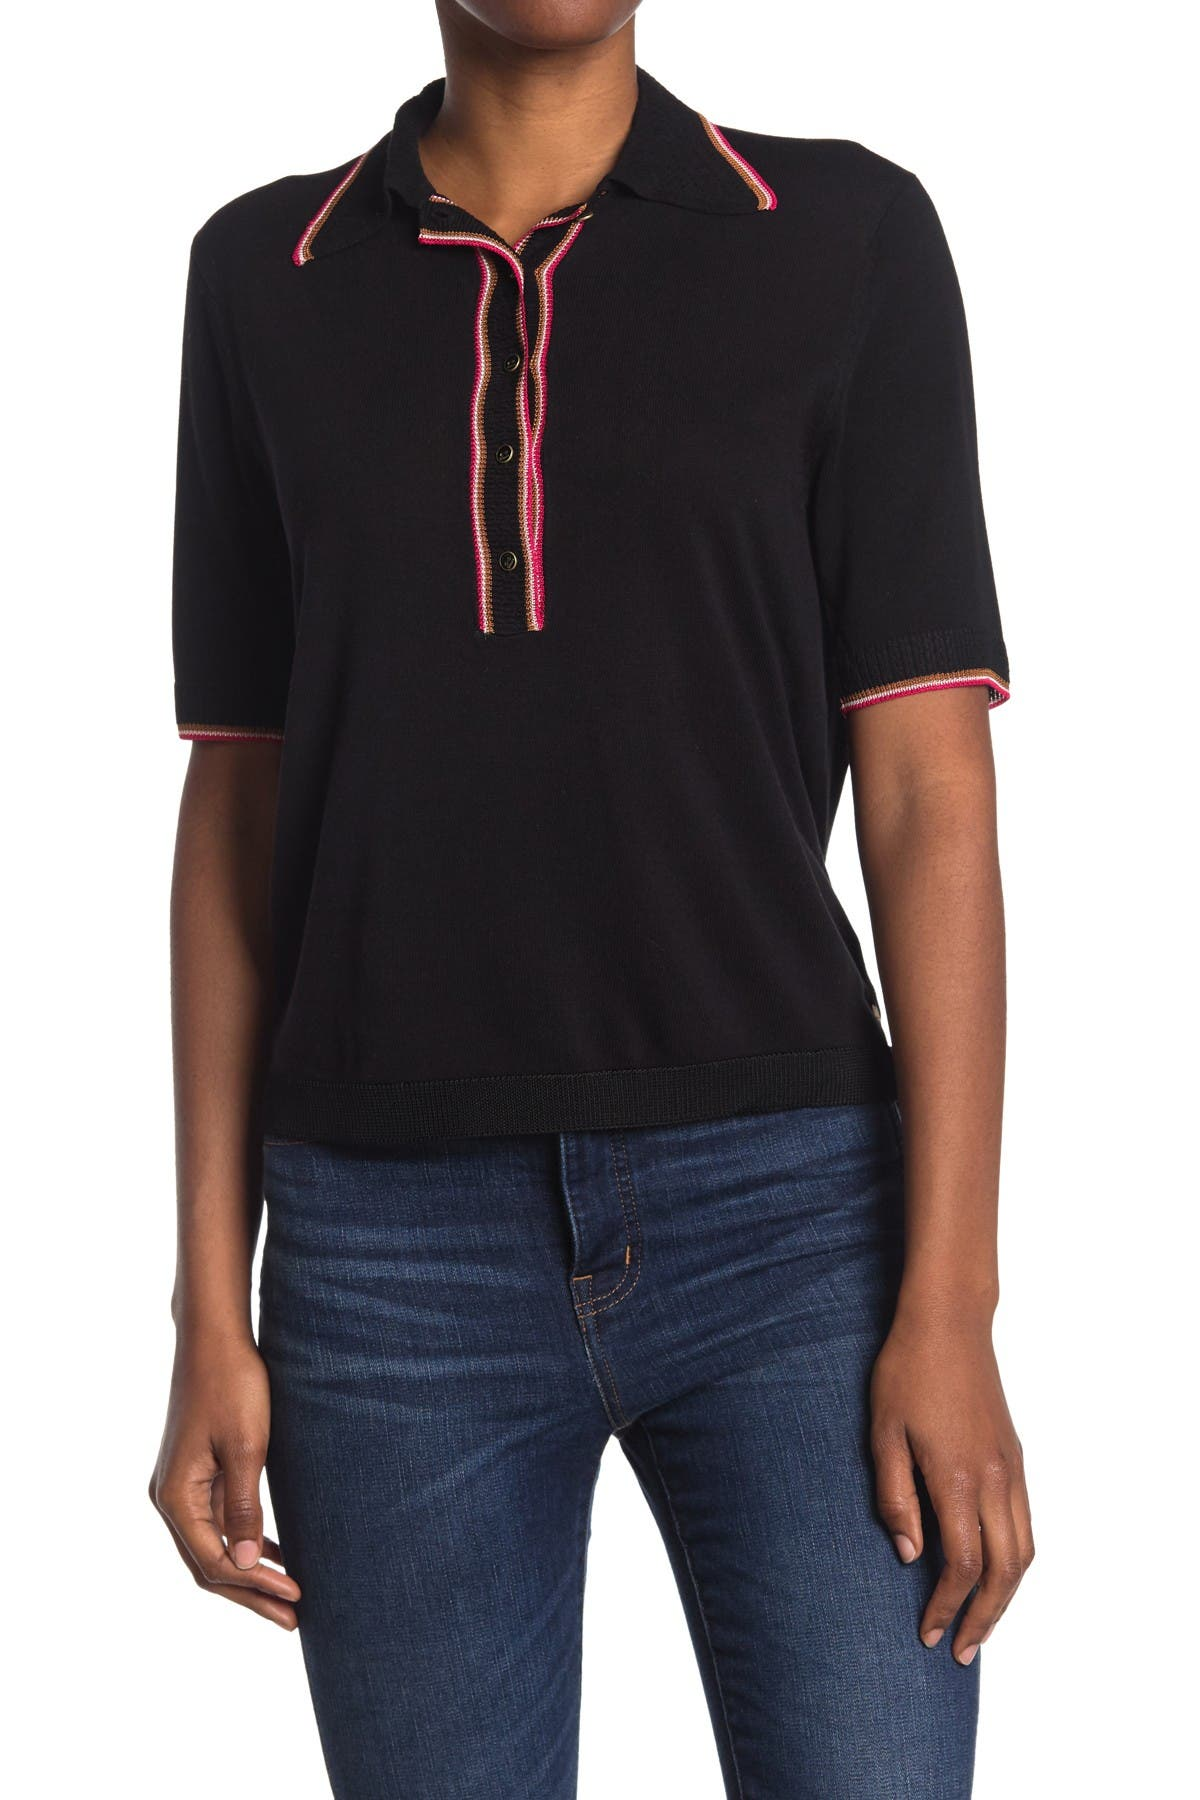 Image of Scotch & Soda Draped Knit Sporty Polo